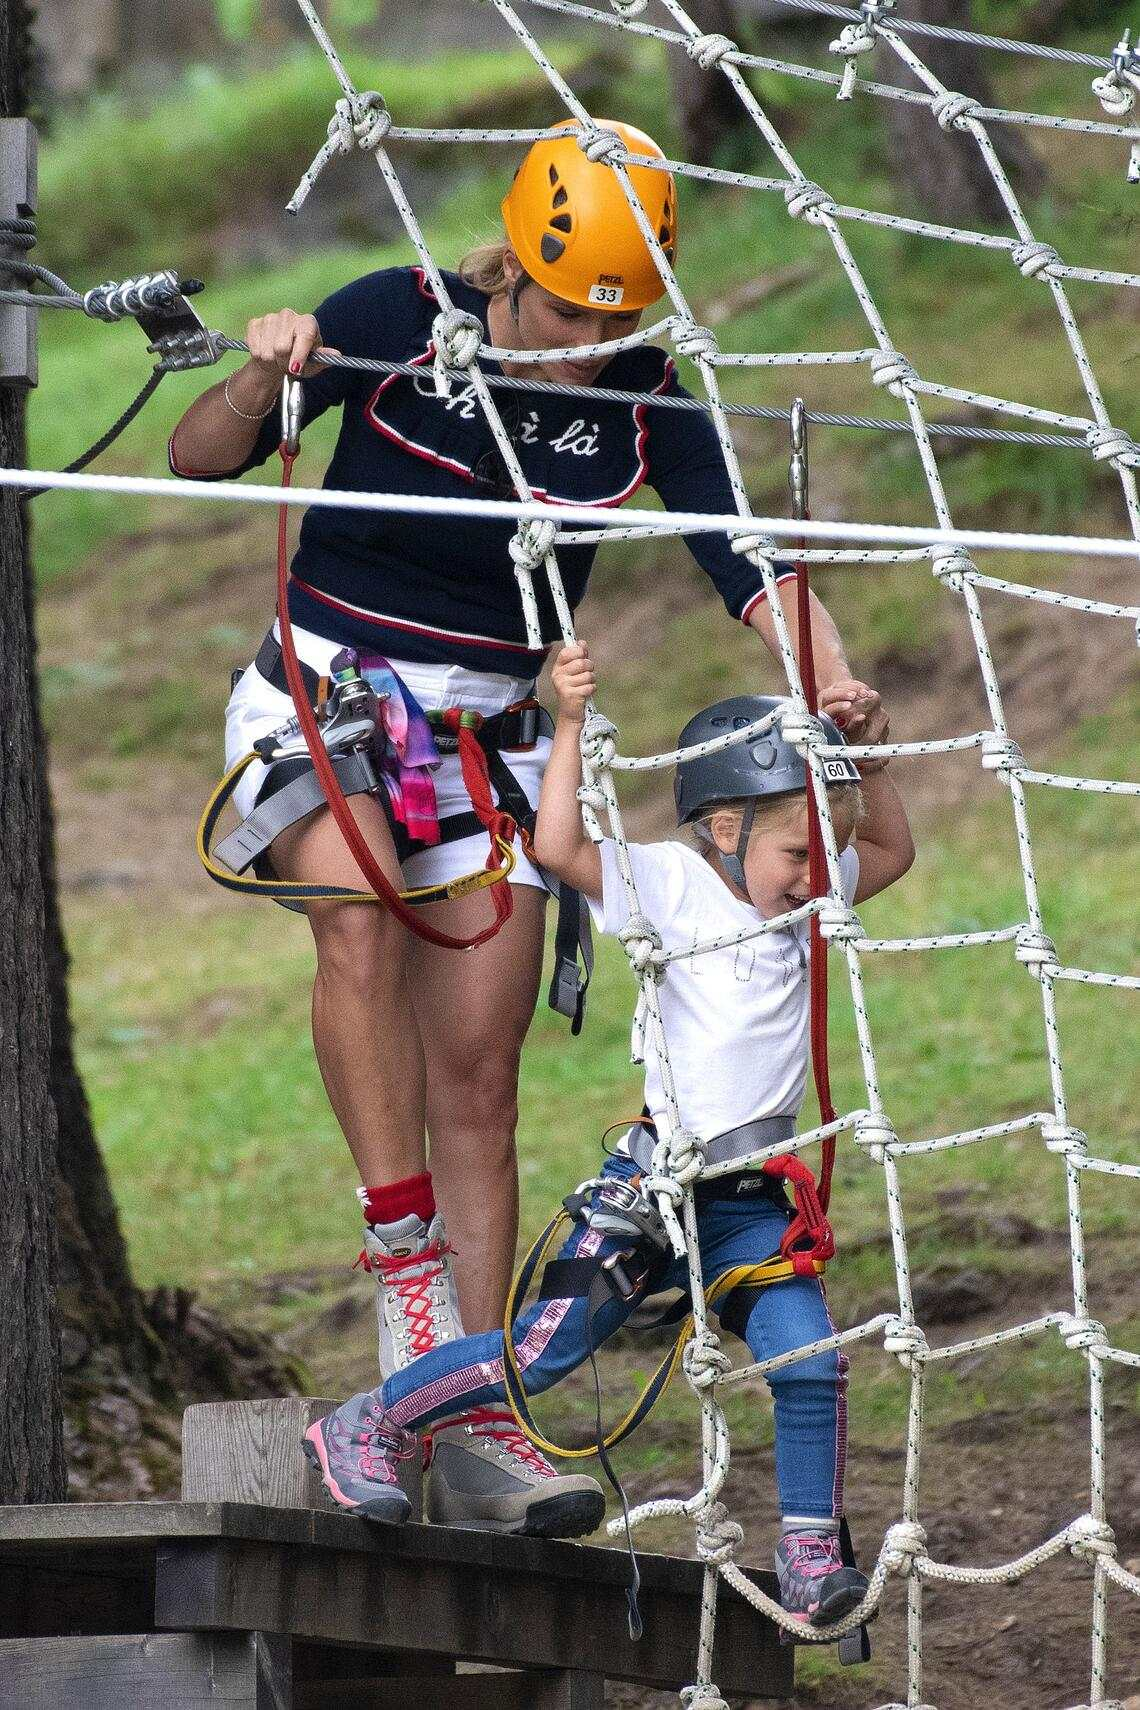 Michelle Hunziker has fun at the Adventure Park of Colfosco with daughters Sole and Celeste, while husband Tomaso Trussardi greets them from helicopter.22 Aug 2019Pictured: Michelle Hunziker   and Celeste Trussardi.Photo credit: MEGATheMegaAgency.com+1 888 505 6342